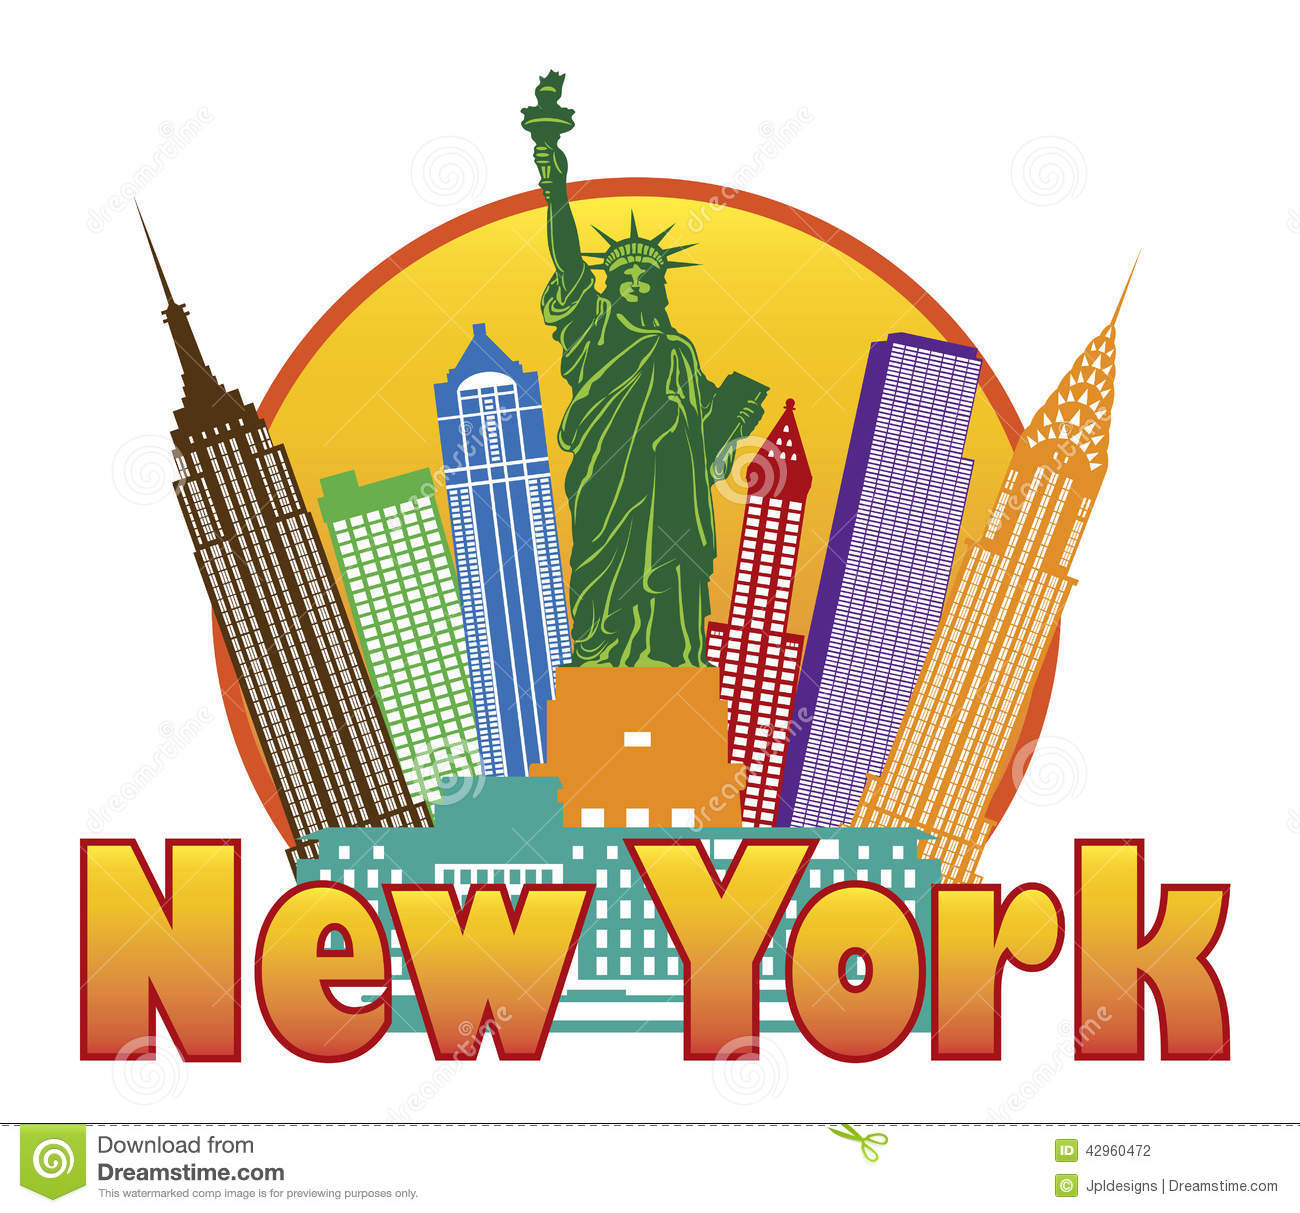 New York City Colorful Skyline With Stat-New York City Colorful Skyline With Statue Of Liberty In Circle-5